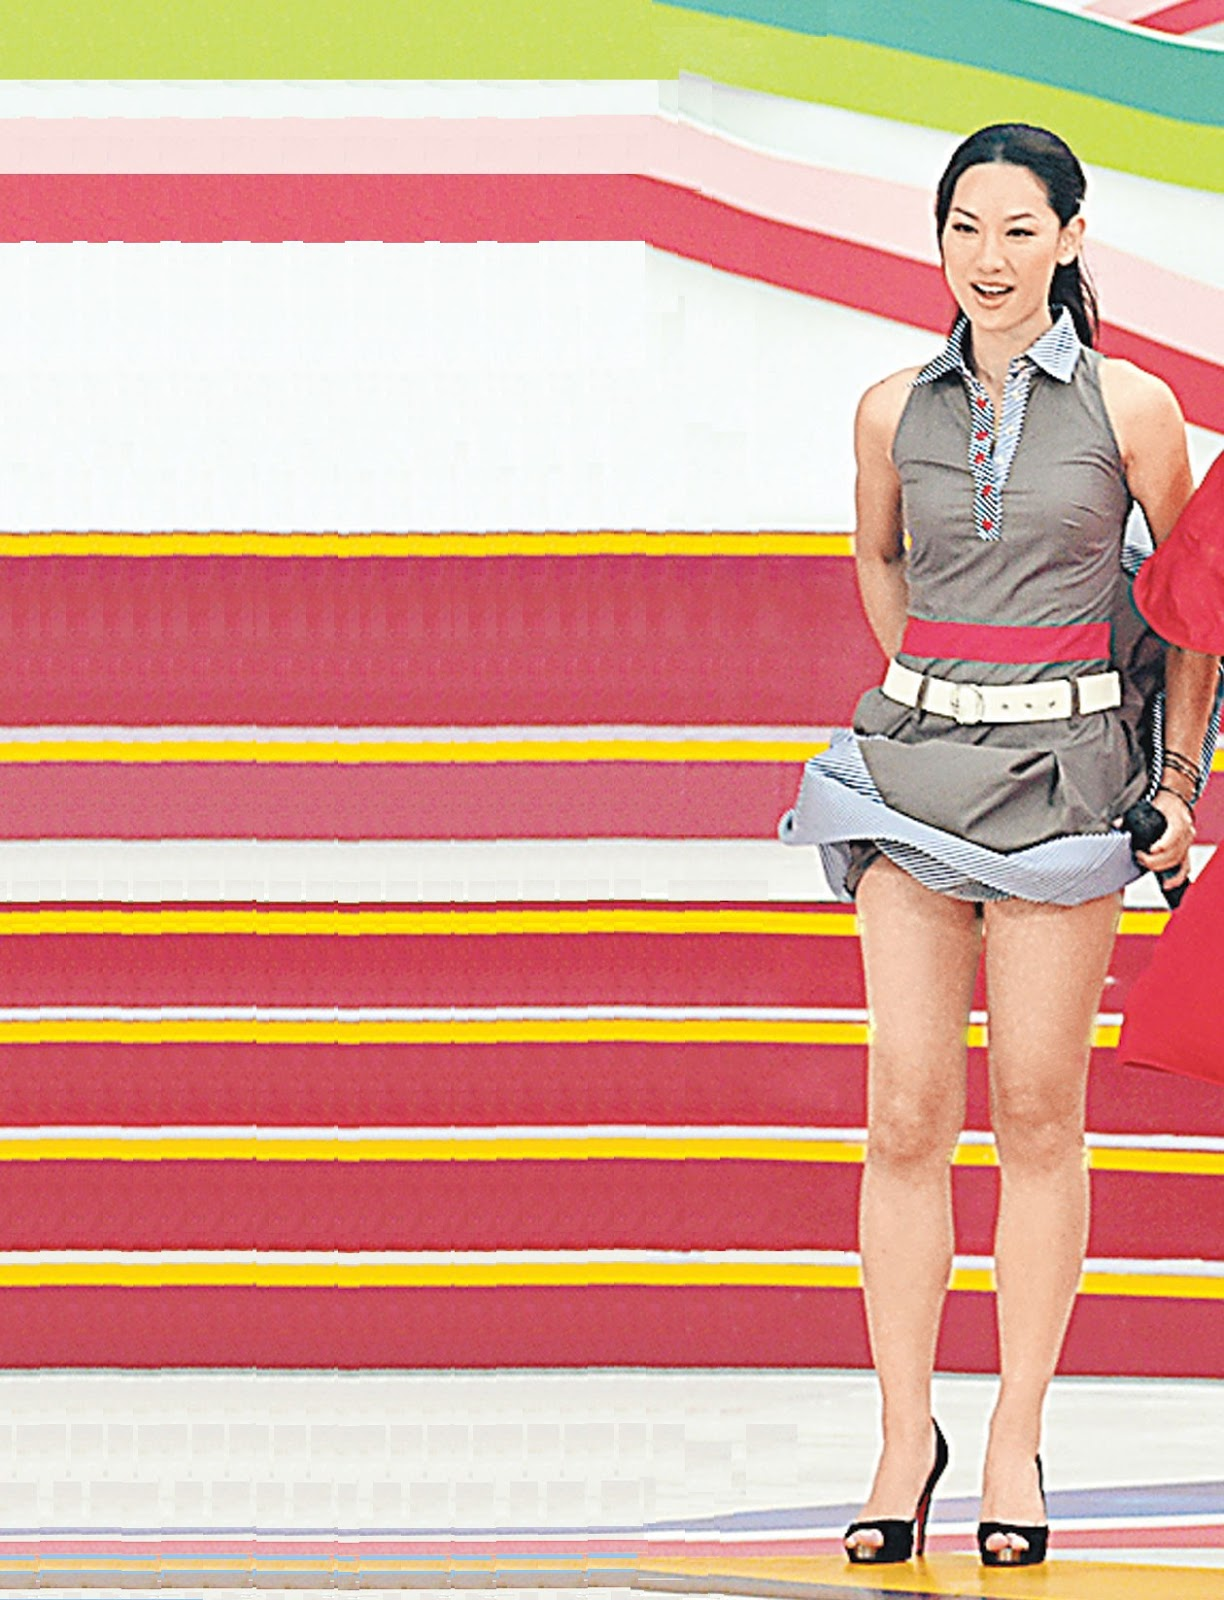 'Sexy lady' Miss Hong Kong, Kate Tsui bomb shell